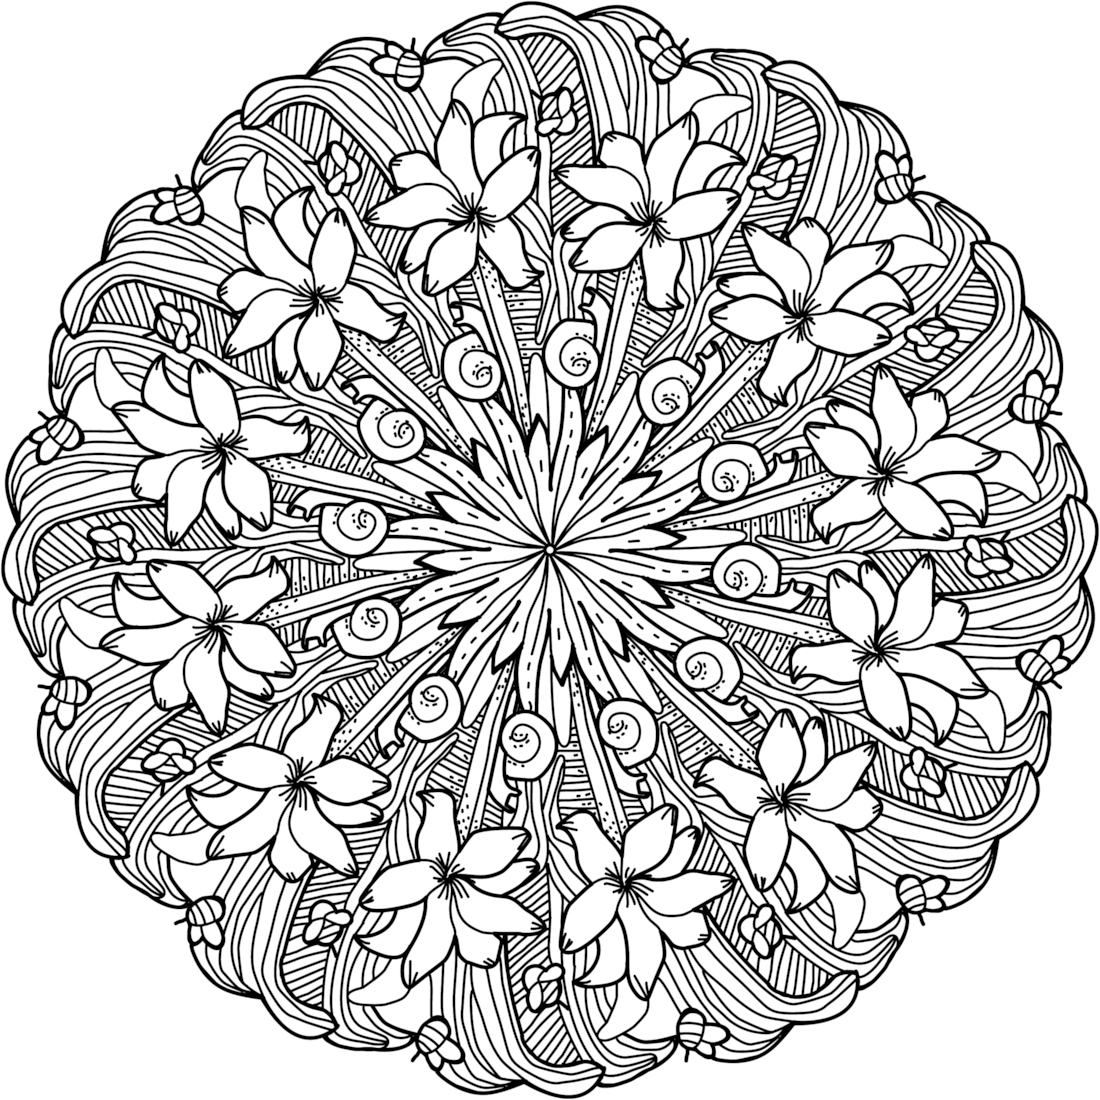 free coloring pages online rainbow dash coloring pages best coloring pages for kids pages online free coloring